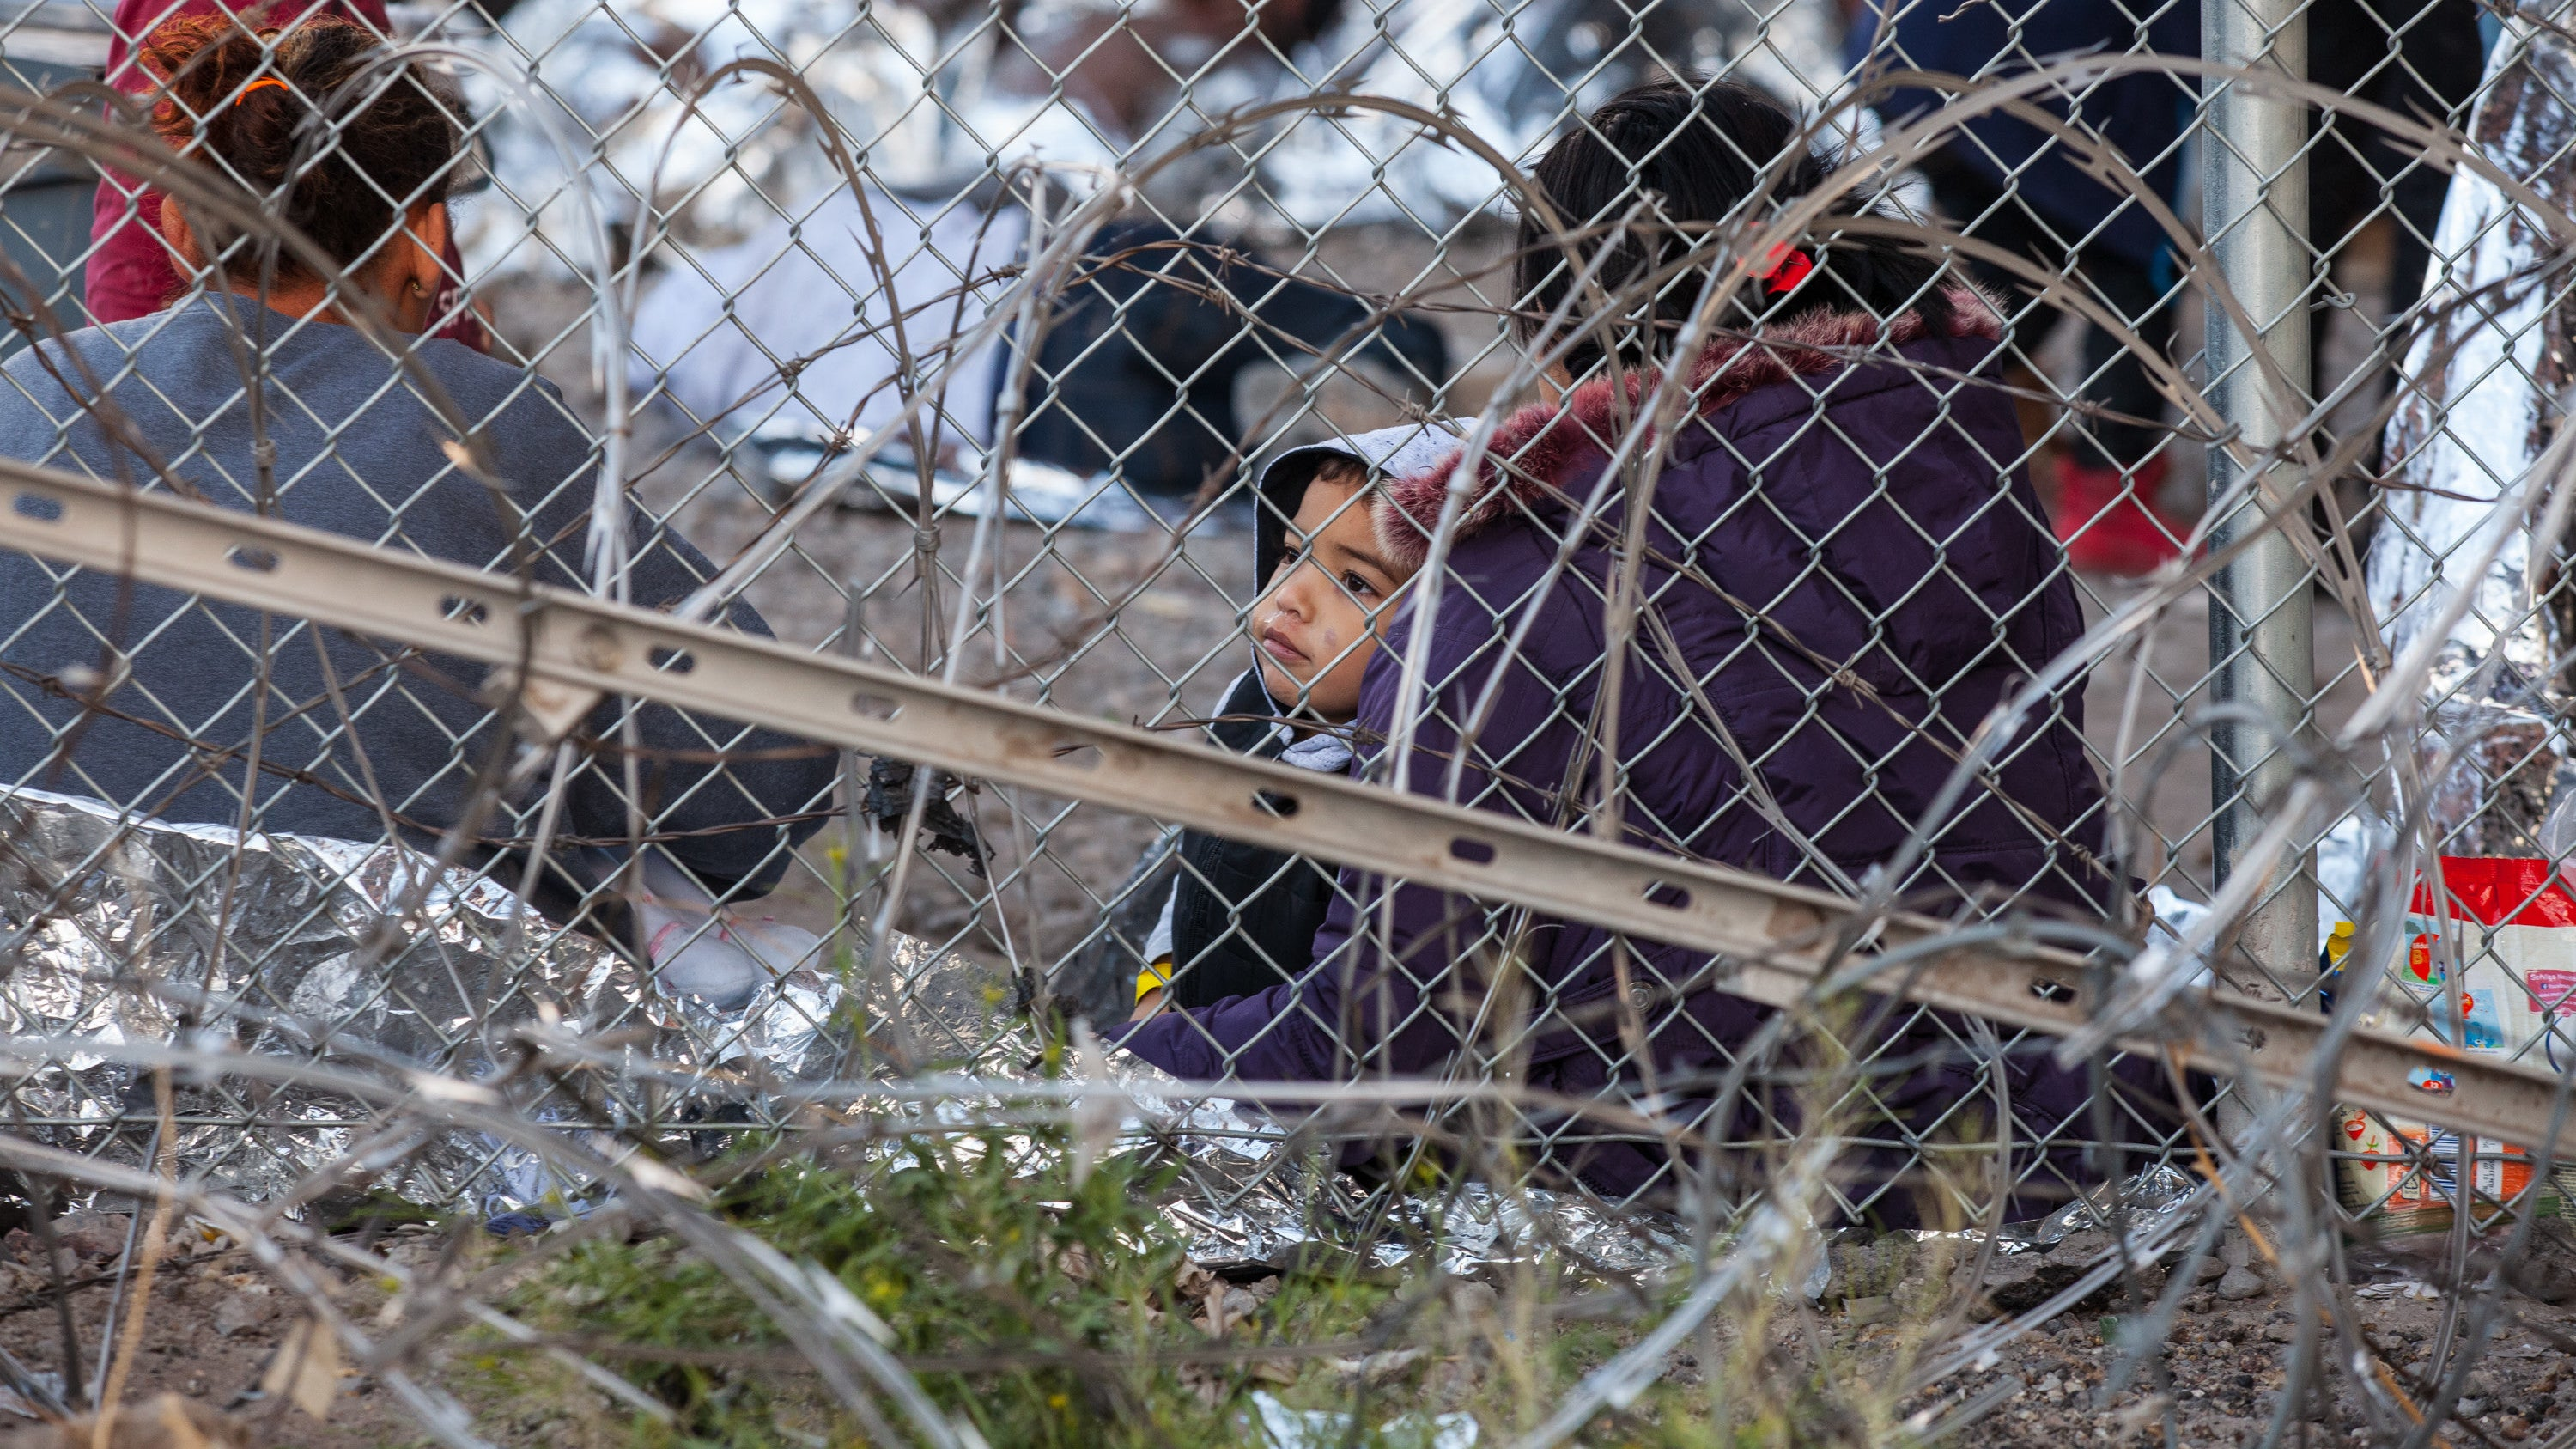 Wayfair CEO Refuses To Stop Furnishing Concentration Camps: Report